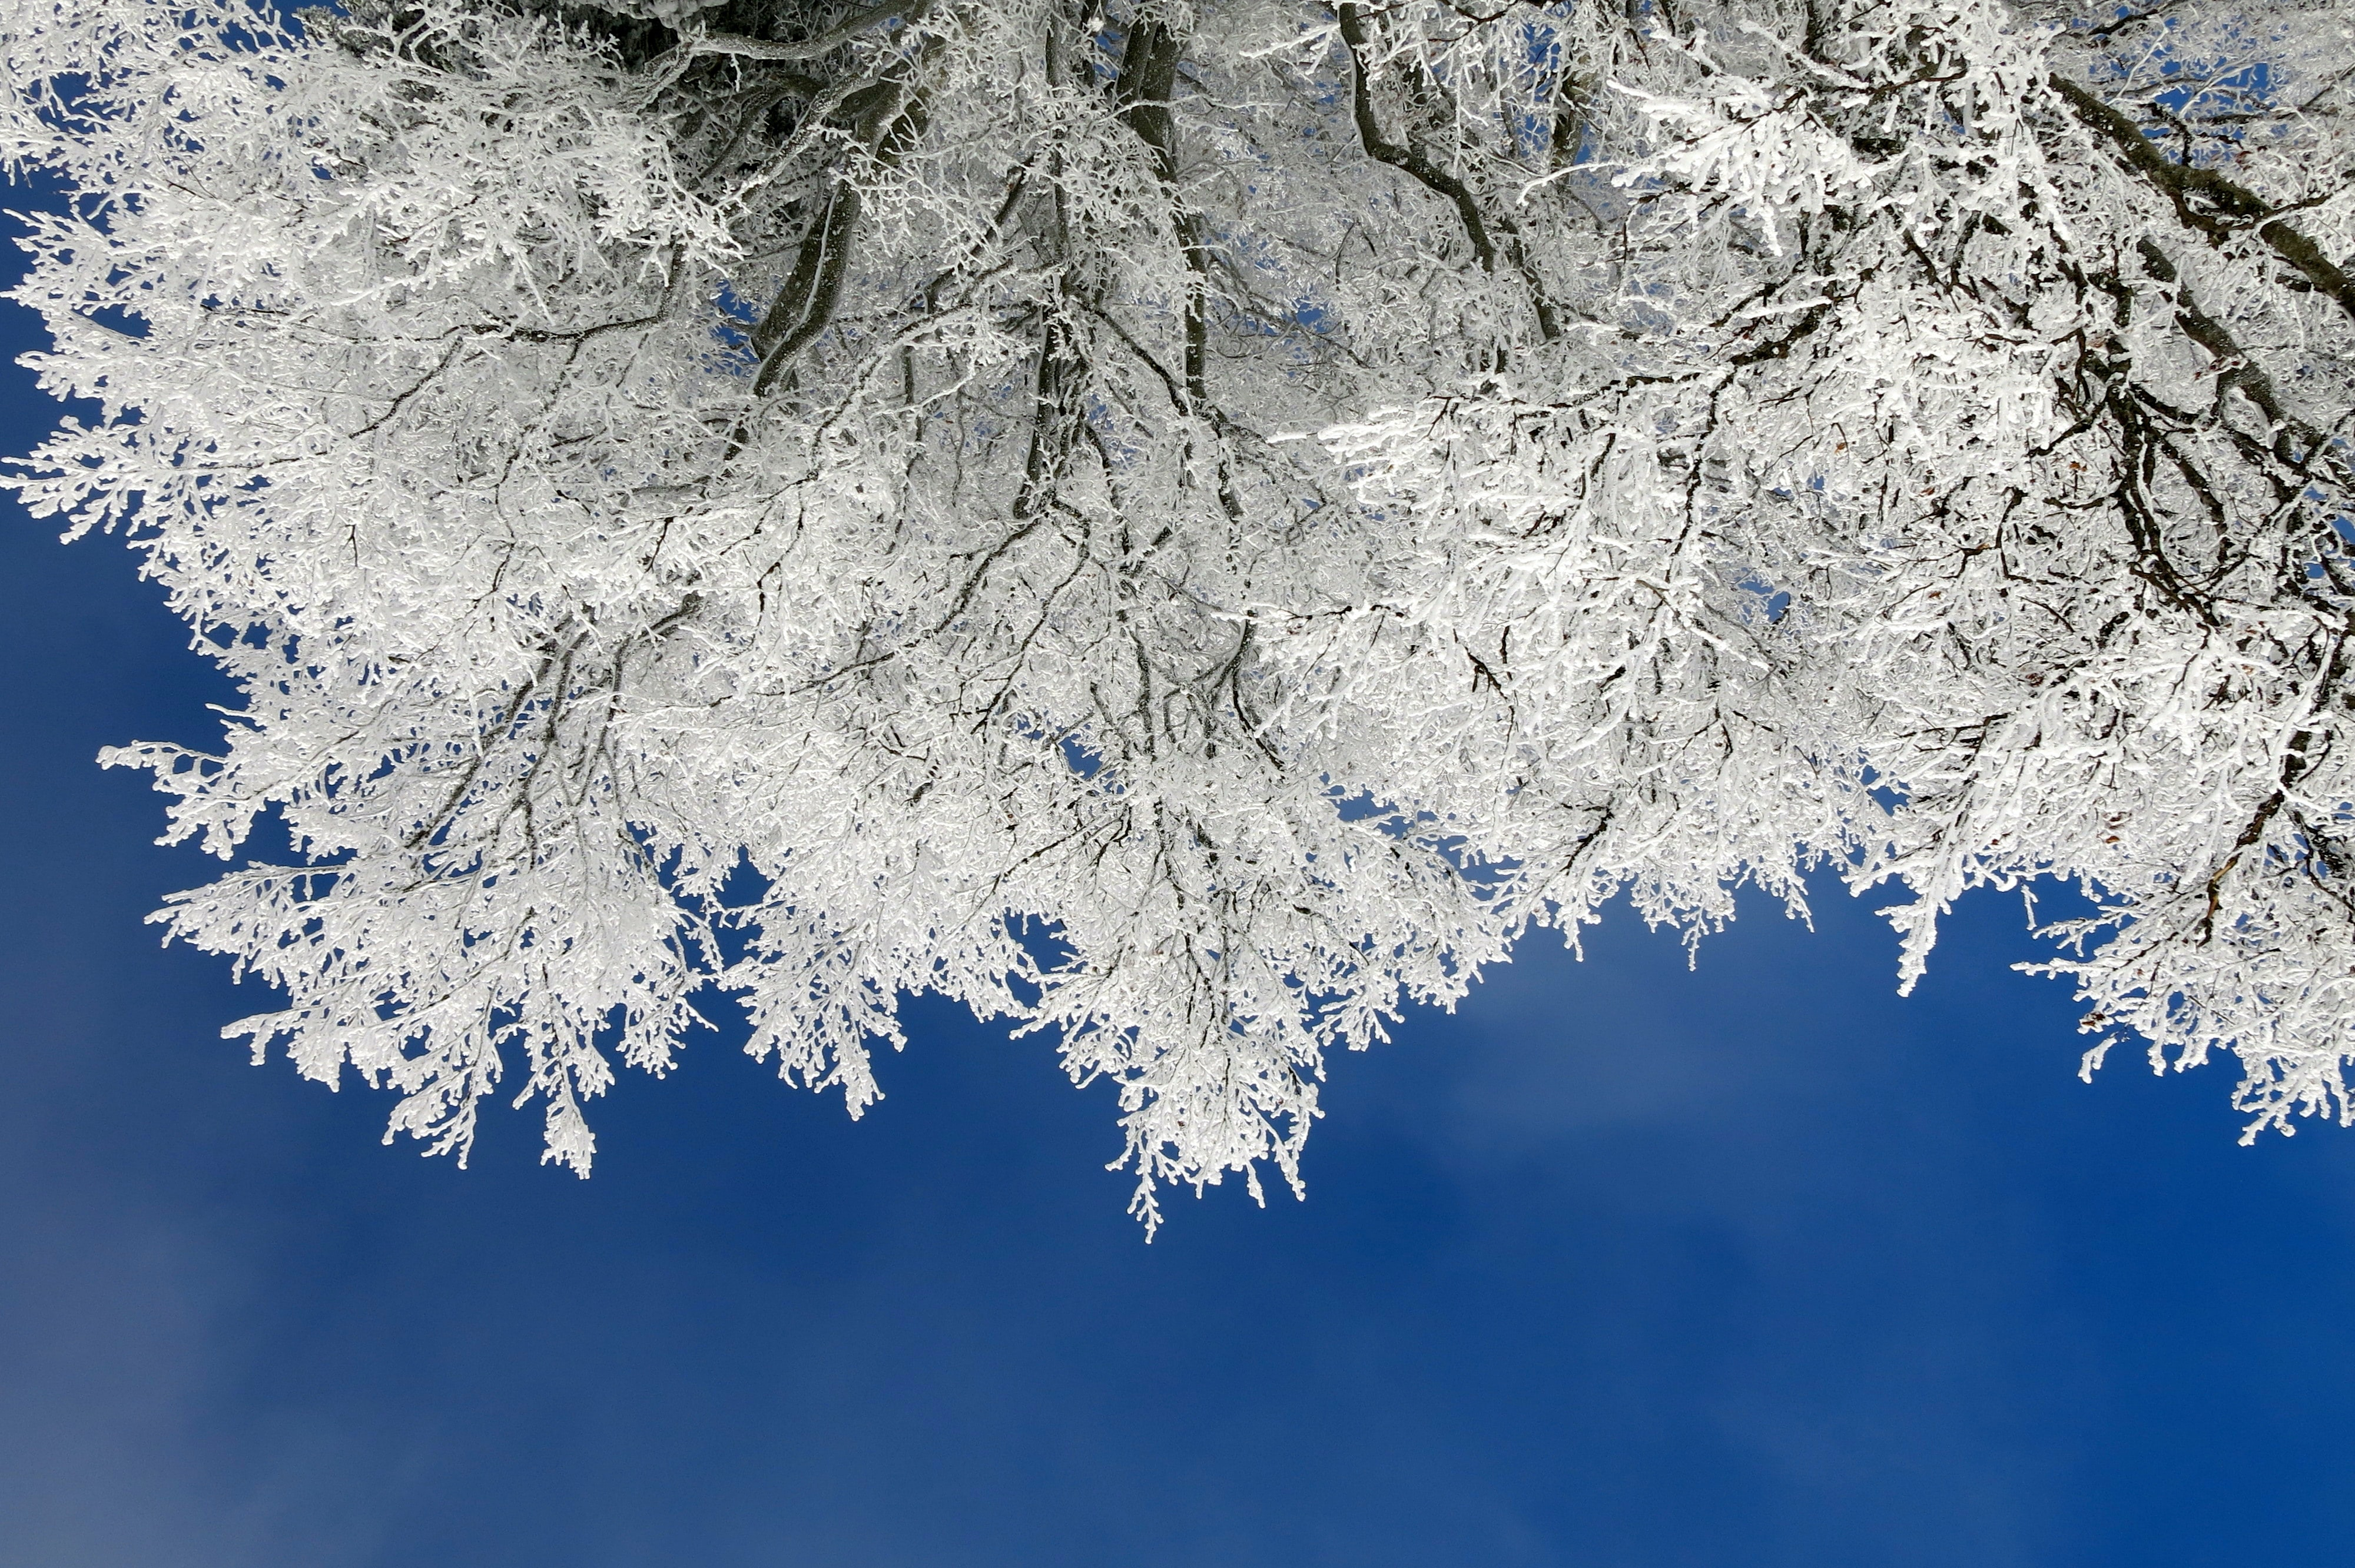 Beneath a tree with snow covering its branches and leaves and a dark blue sky in the background